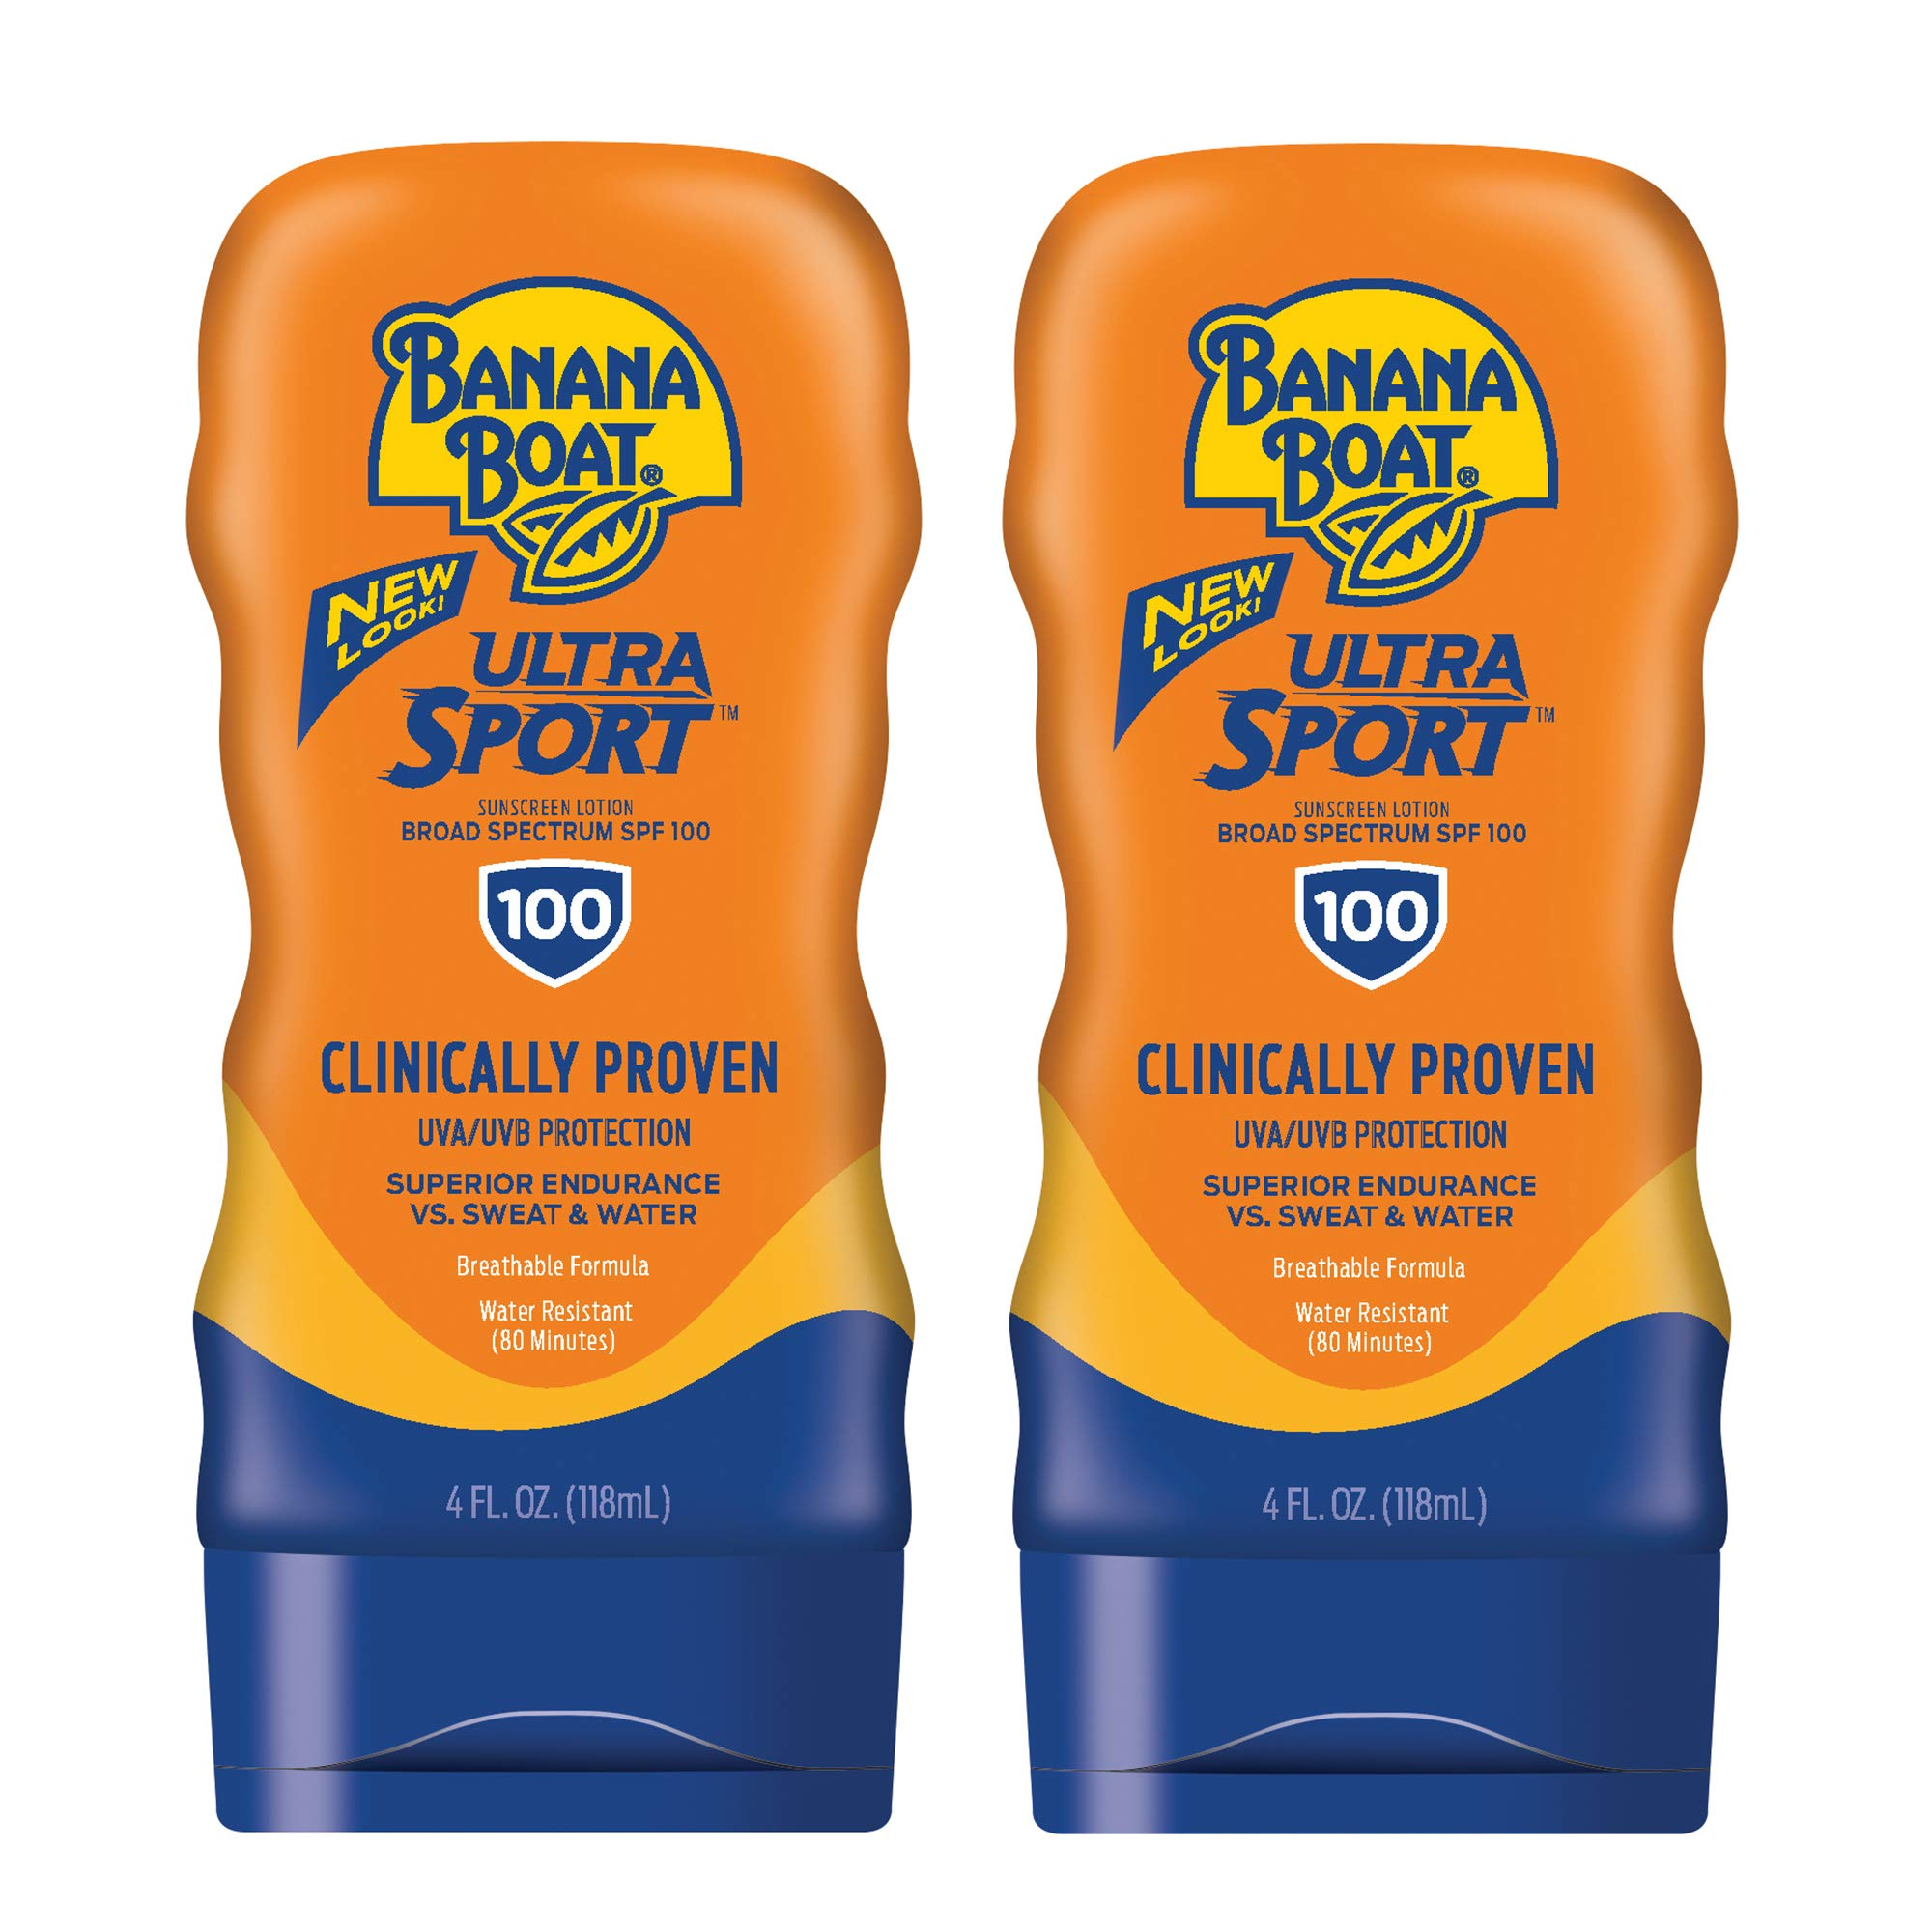 Banana Boat Ultra Sport Sunscreen Lotion, New Formula, SPF 100, 4 Ounces (Pack of 2) by Banana Boat